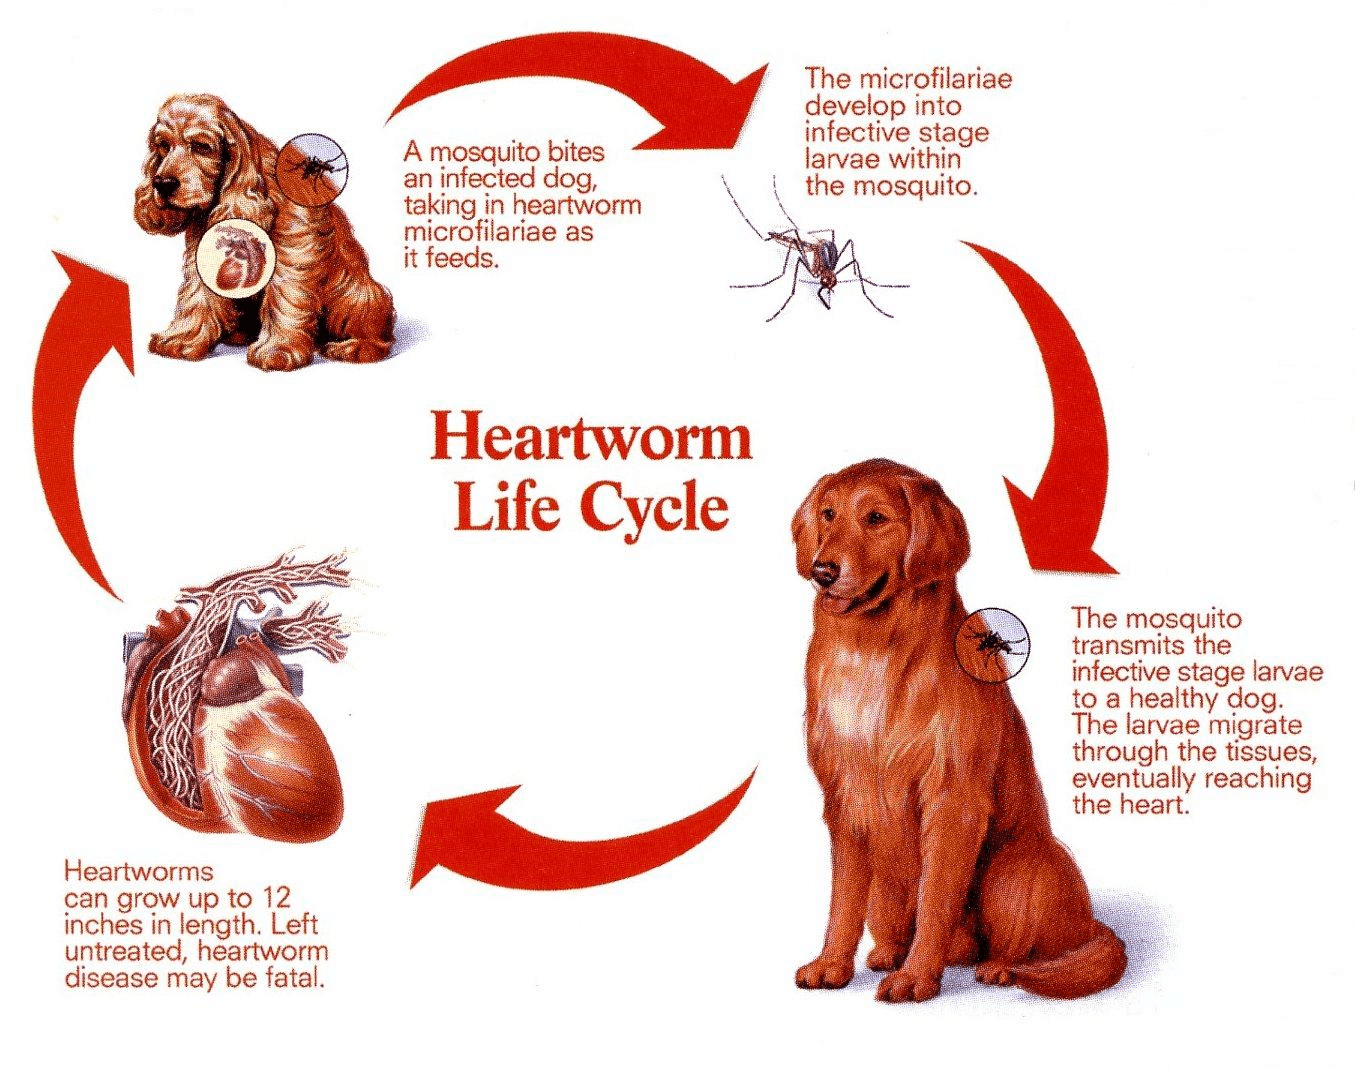 Heartworm life cycle infographic.